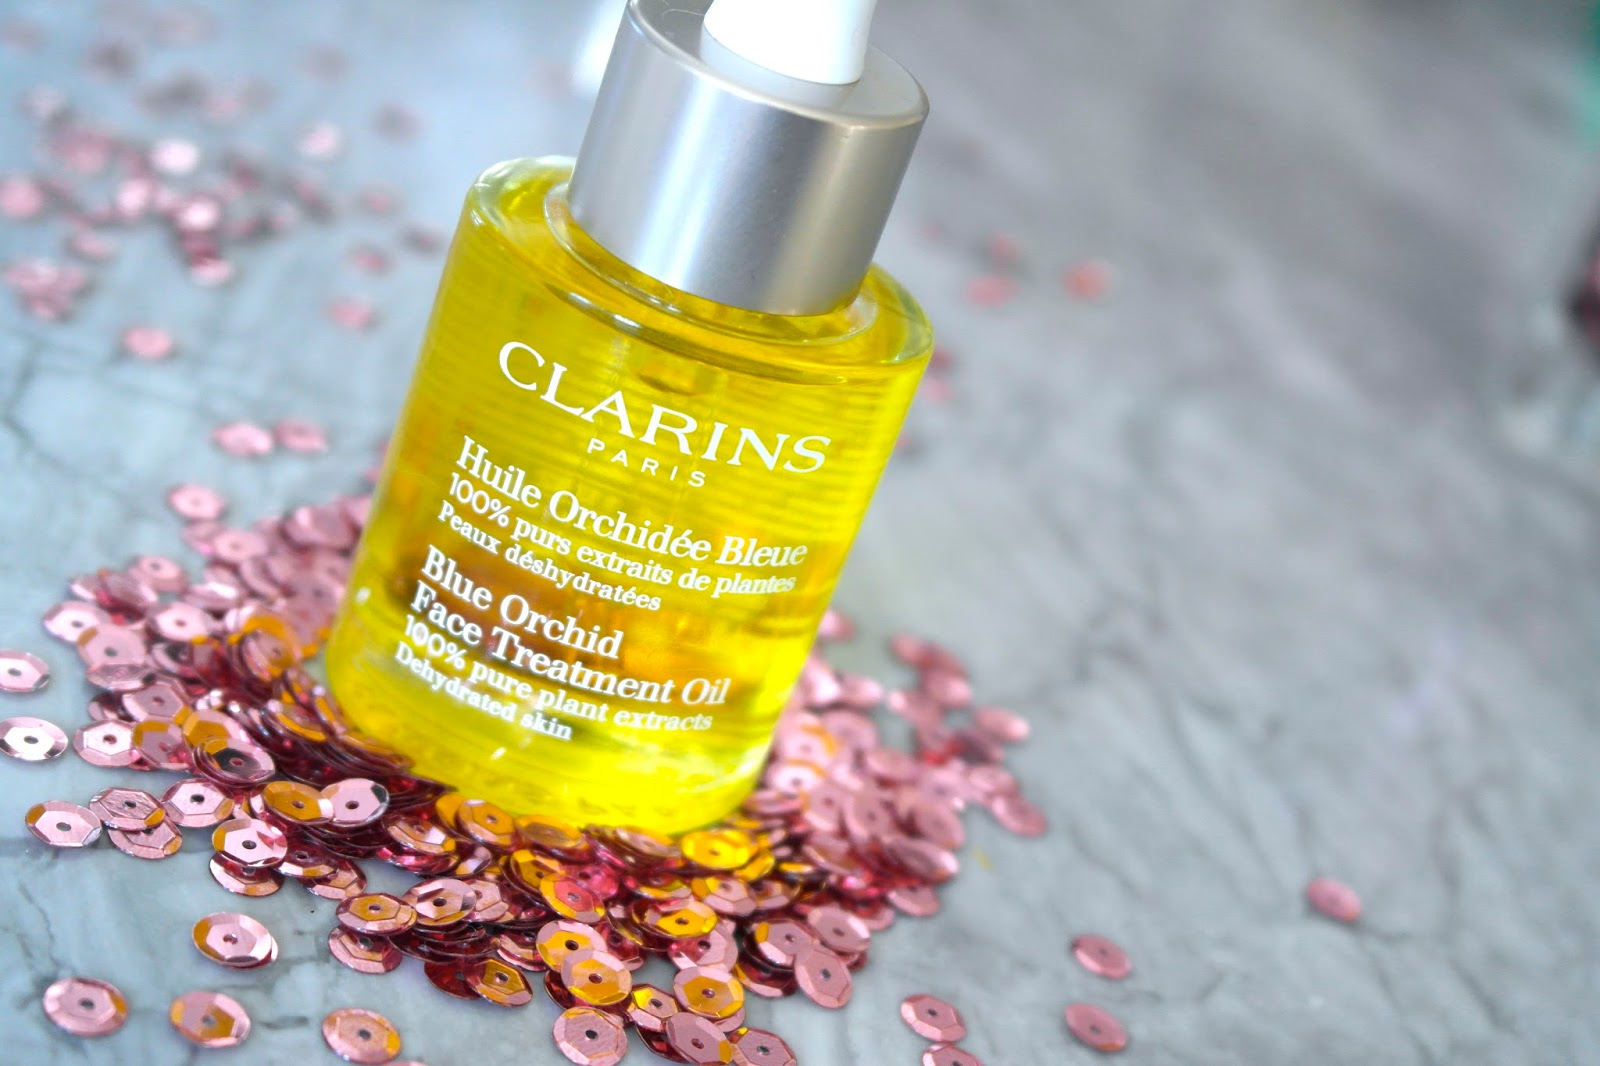 IRENE: Clarins blue orchid ingredients